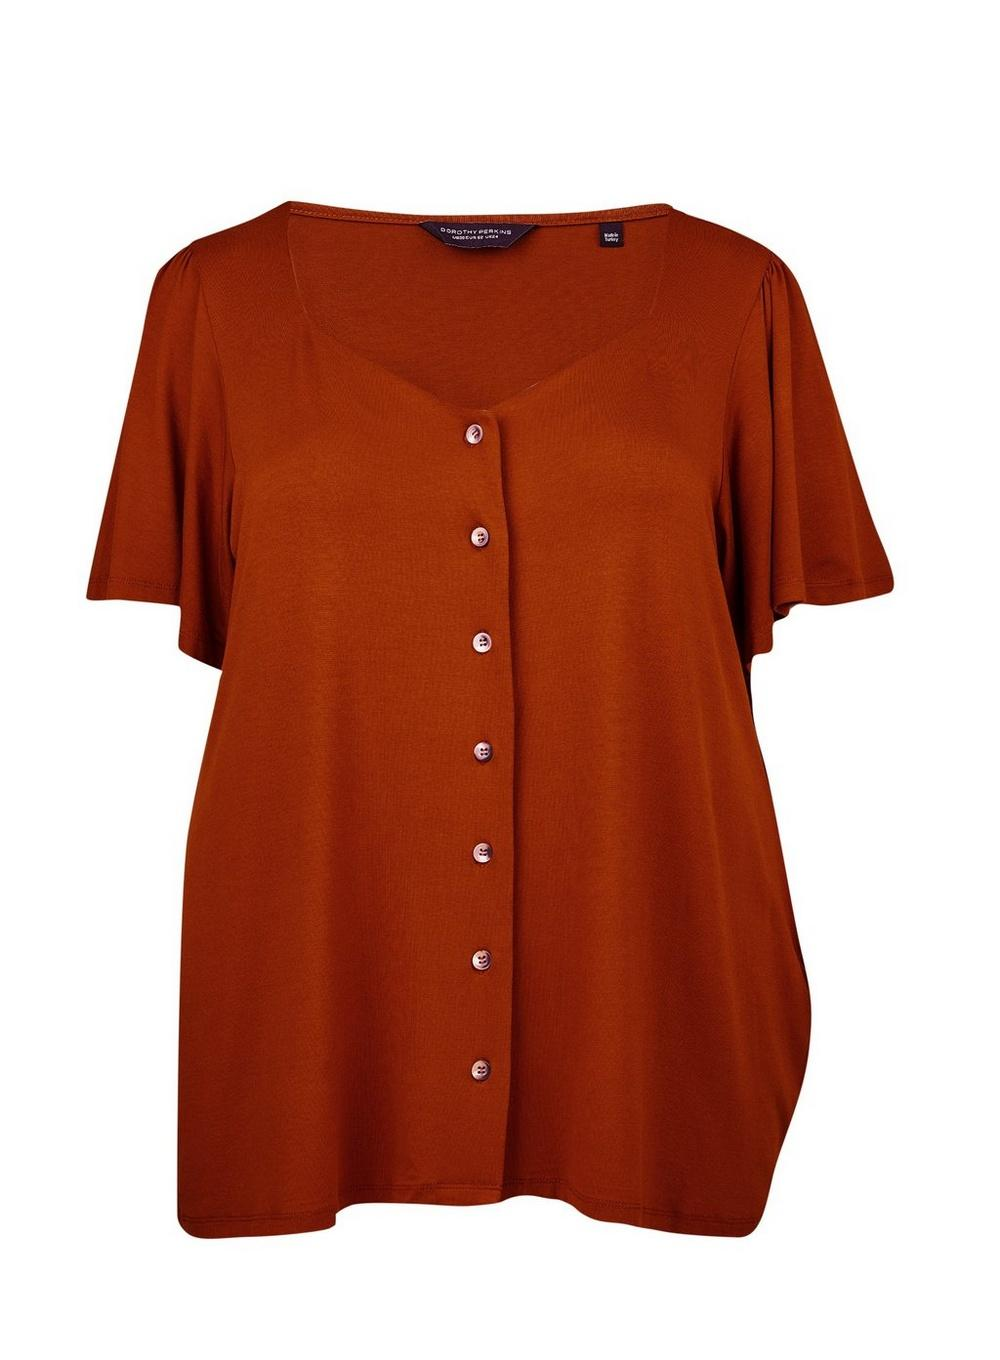 4cba730c46ac7 Dorothy Perkins. Women's Dp Curve Ginger Button Down Top